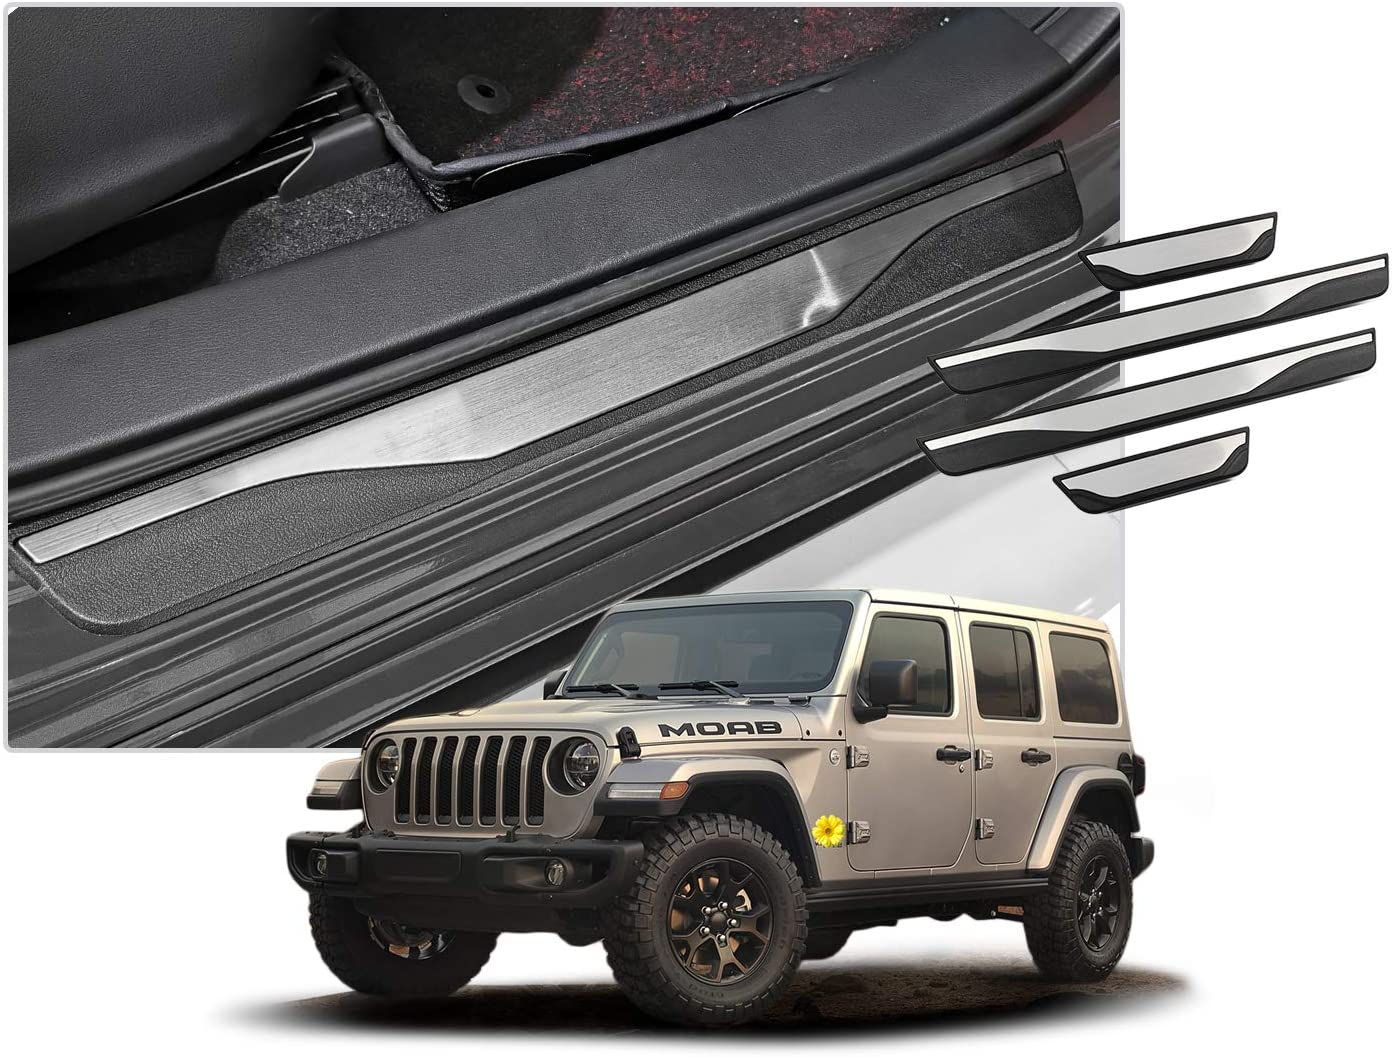 Branded goods CDEFG 5% OFF 4PCS Car Door Sill for Plates Protector Scuff G